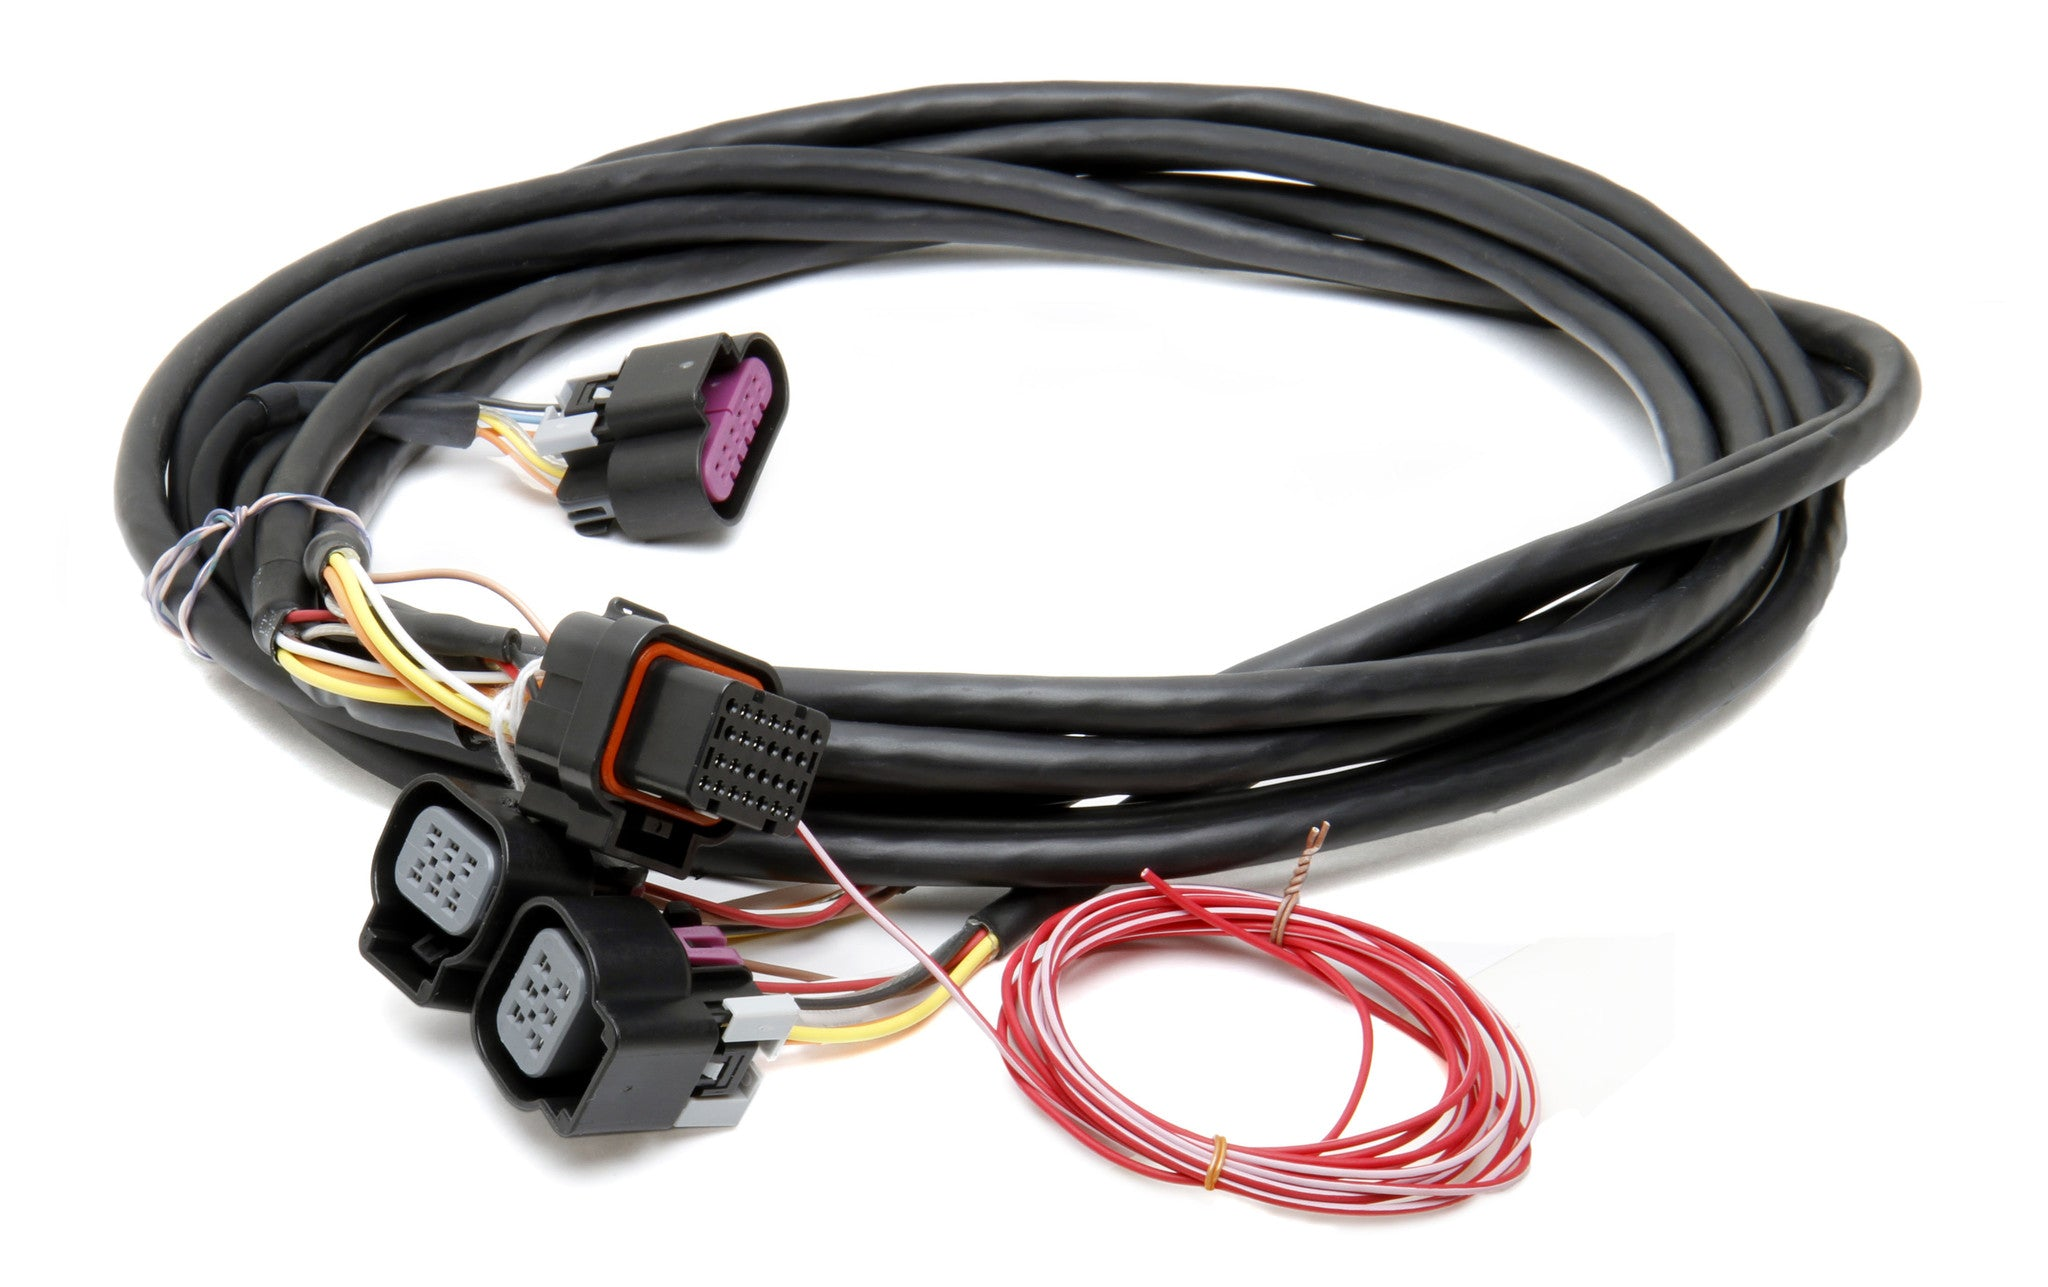 Gm Dual Drive By Wire Harness Redline Motorsports Inc Wiring